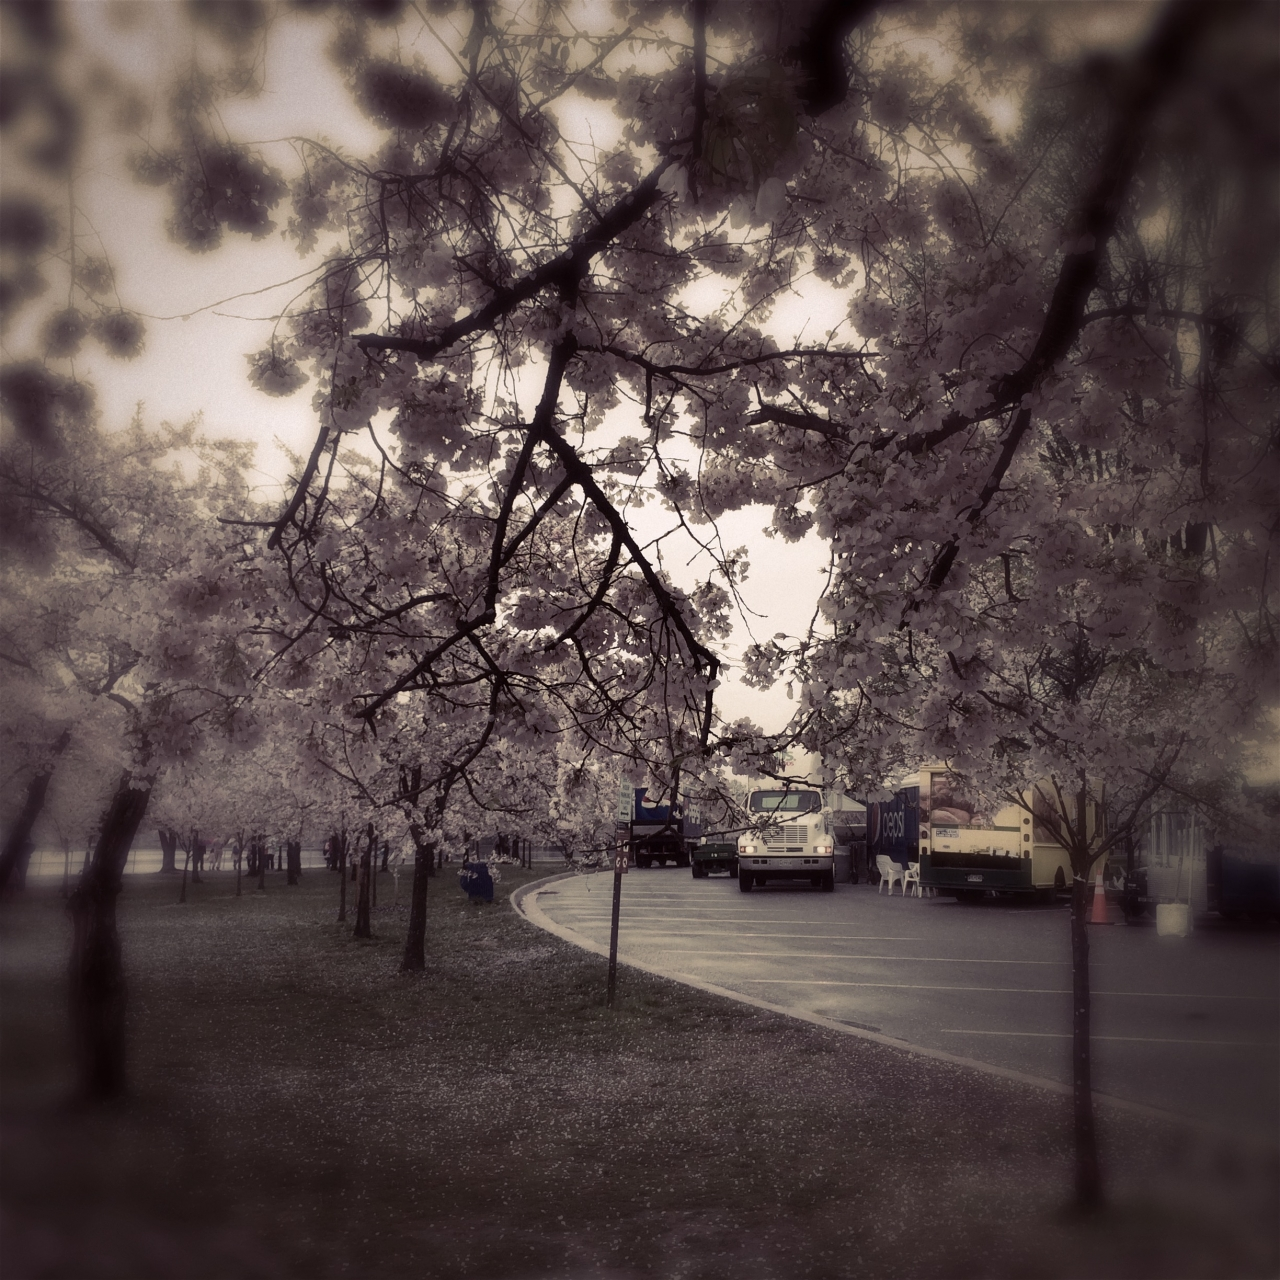 Truck behind the cherry blossoms<br /> <br /> iPhone 5S <br /> Hipstamatic - Sergio lens, Blanko...